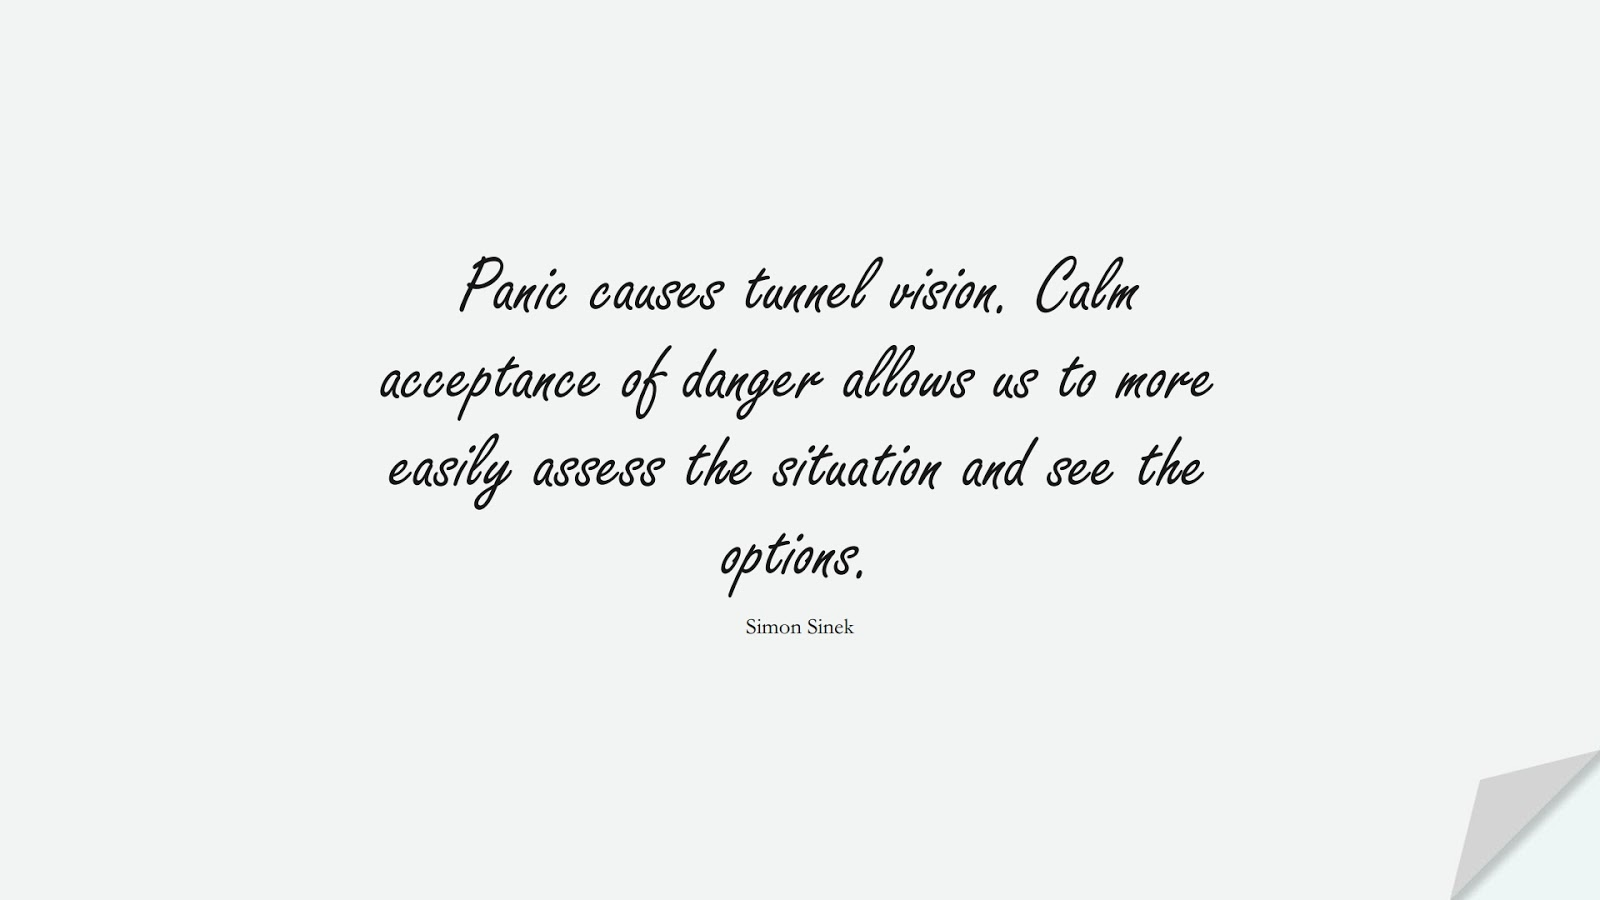 Panic causes tunnel vision. Calm acceptance of danger allows us to more easily assess the situation and see the options. (Simon Sinek);  #CalmQuotes